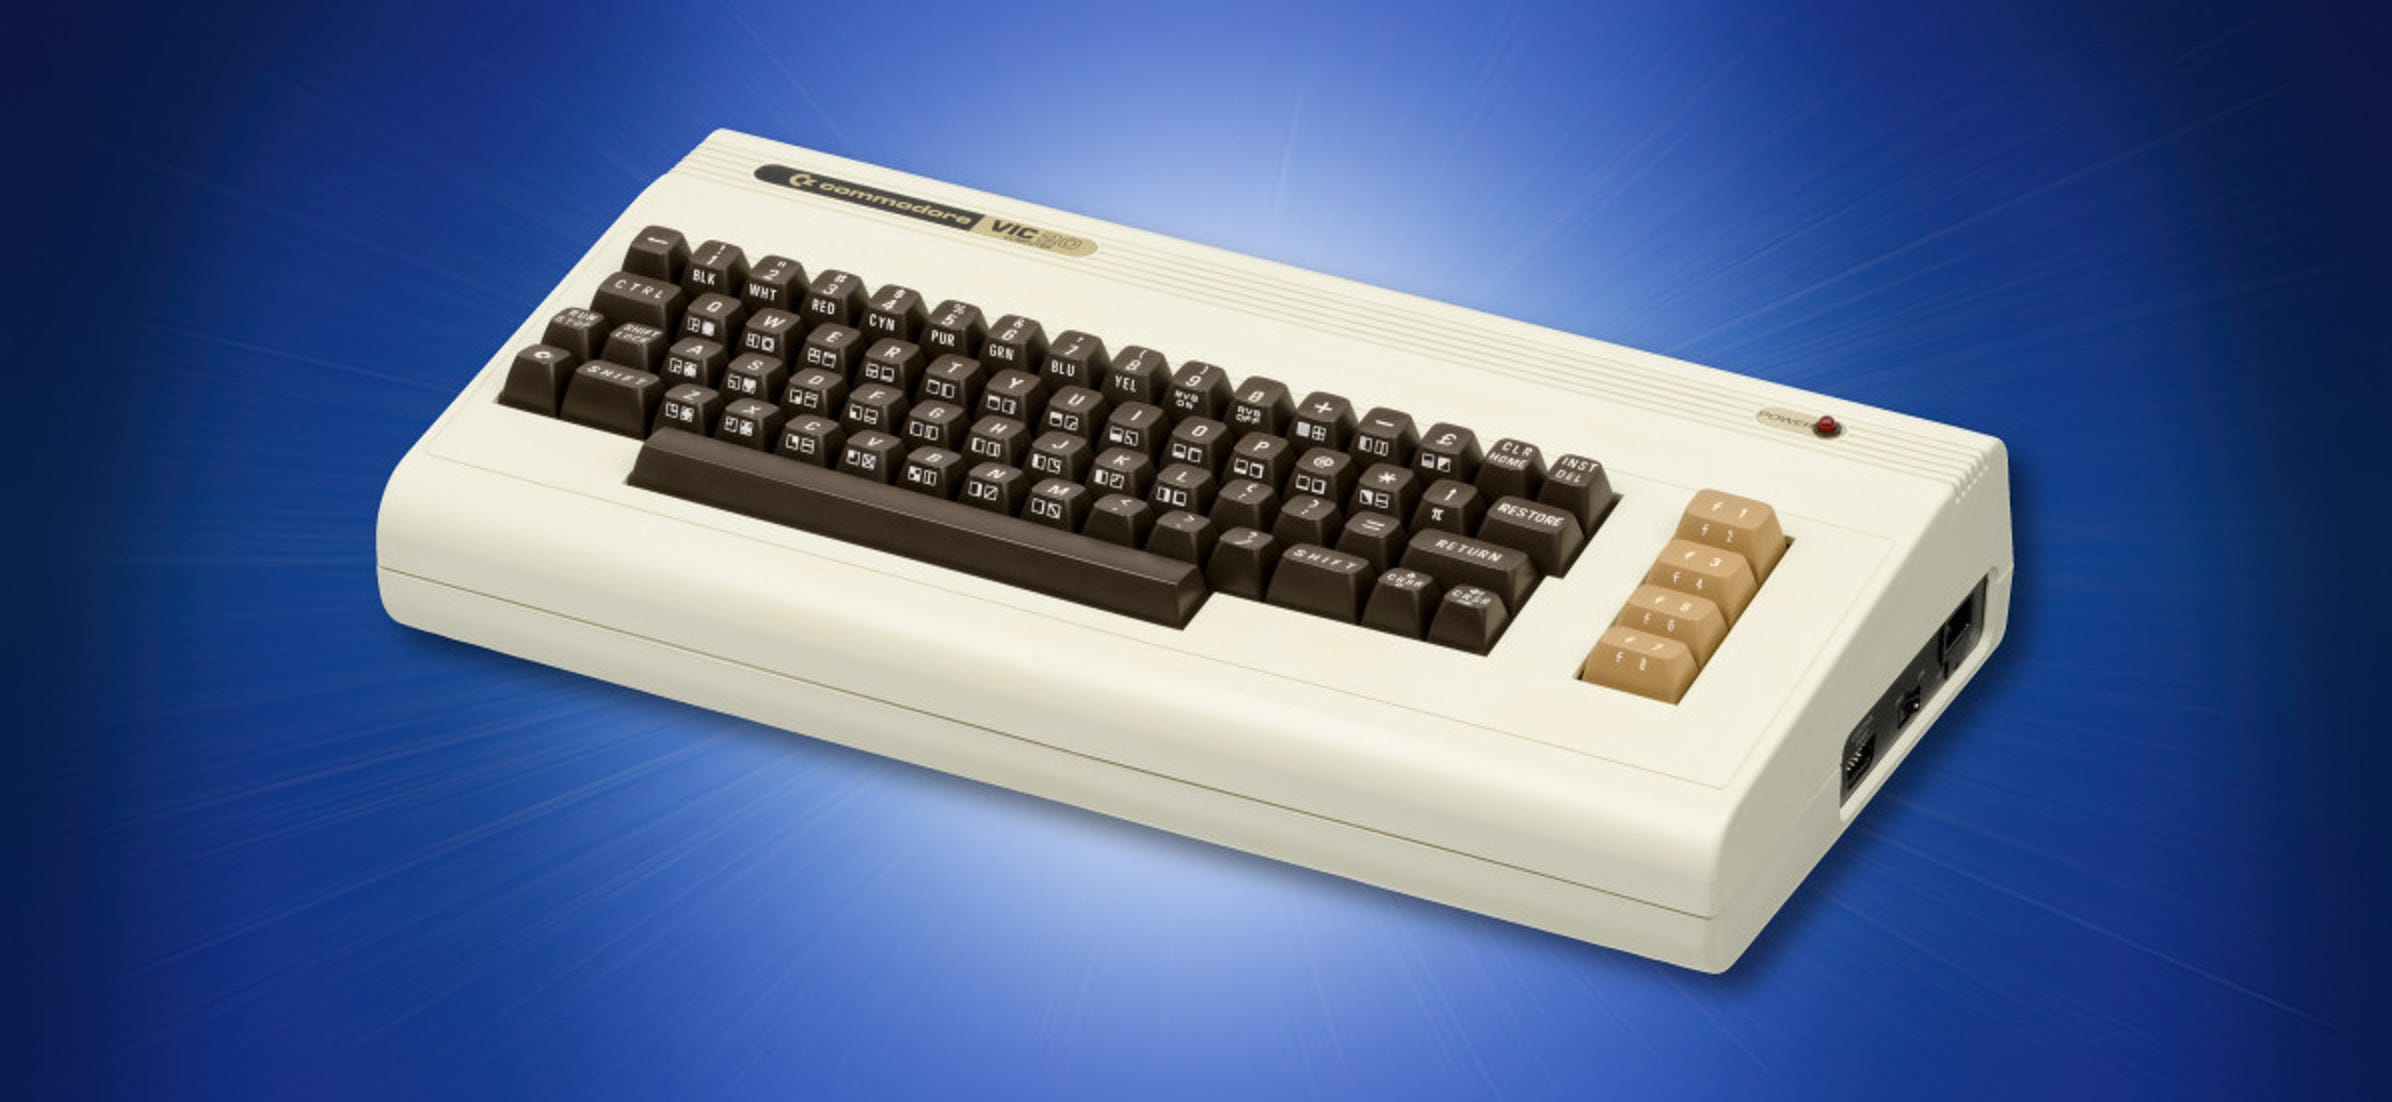 The First PC to Sell Millions: Commodore VIC-20 Turns 40